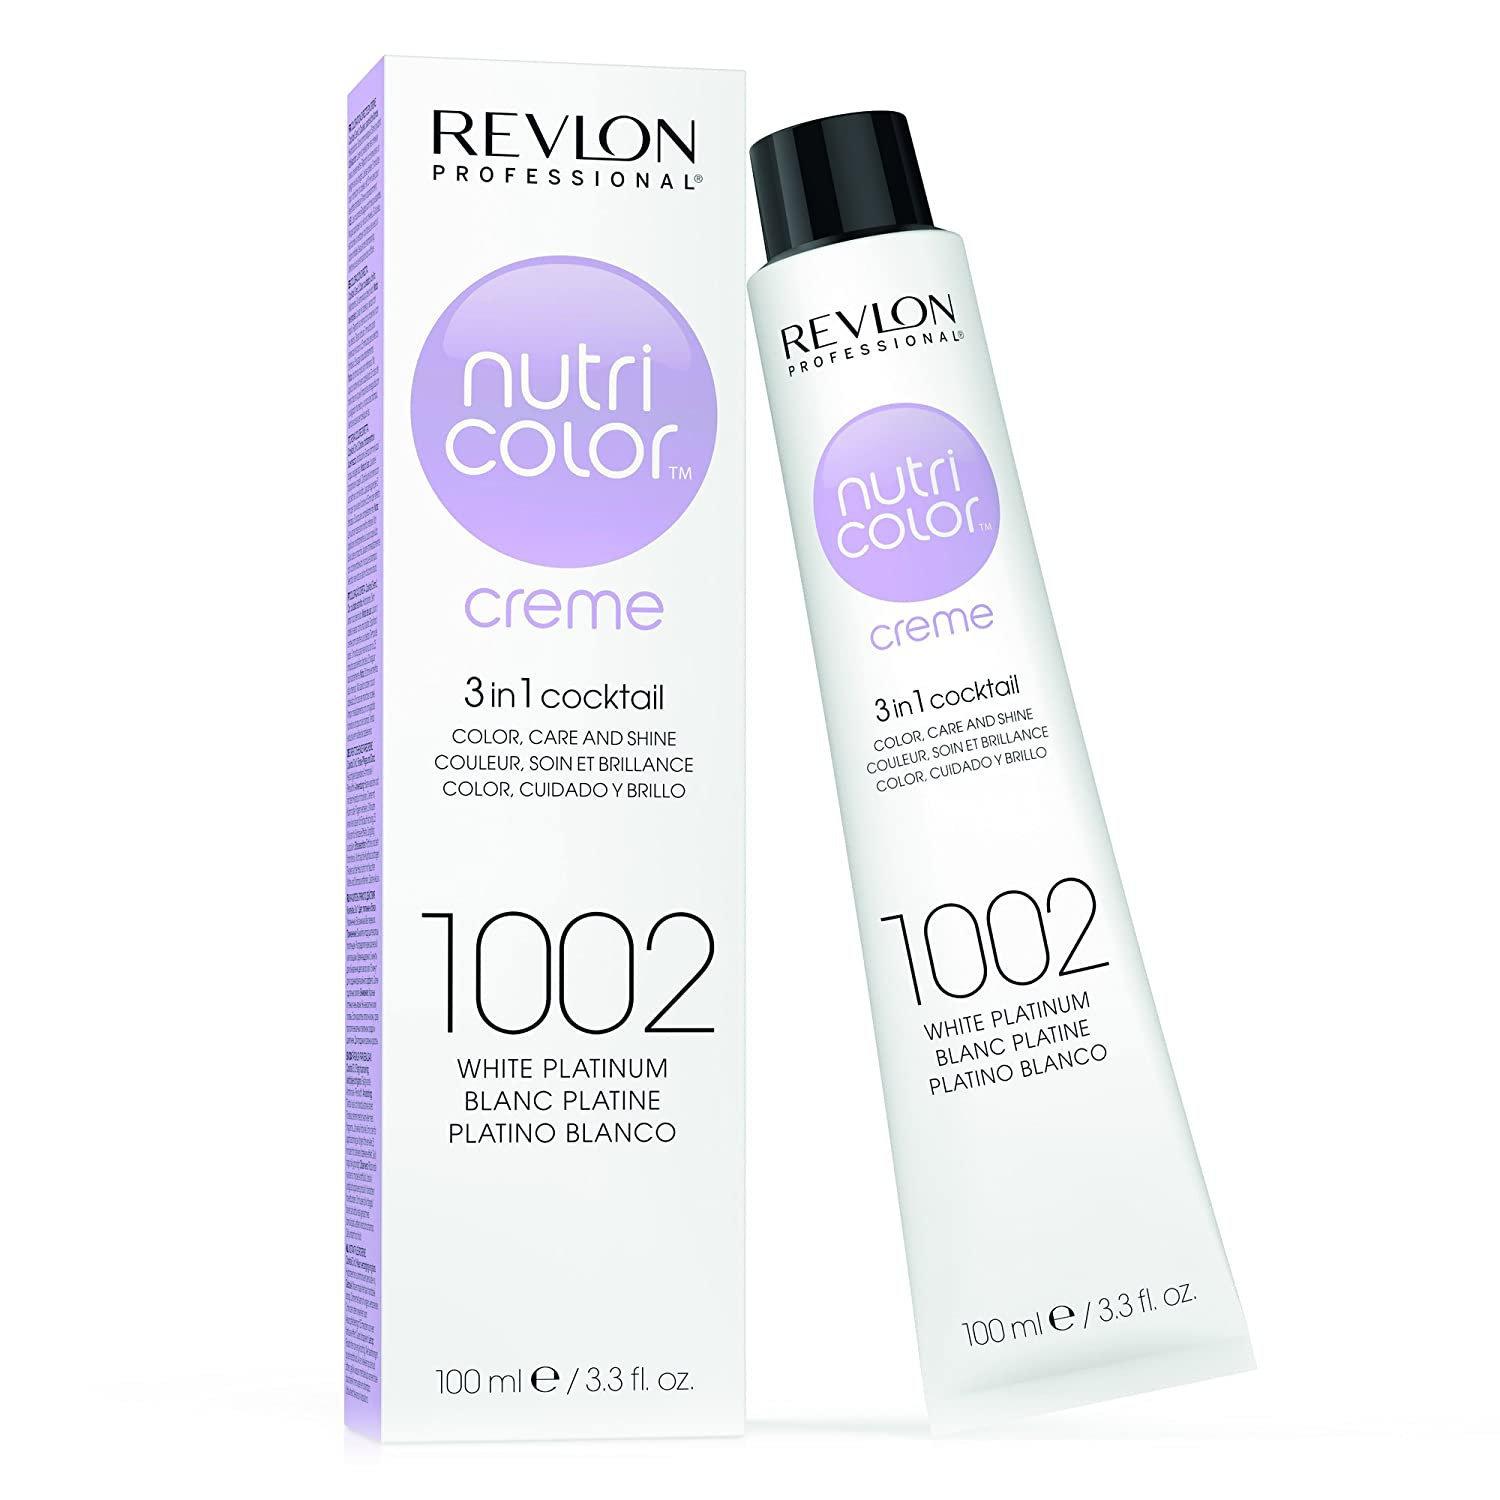 Revlon Nutri Color Creme (#1002) 100 ml